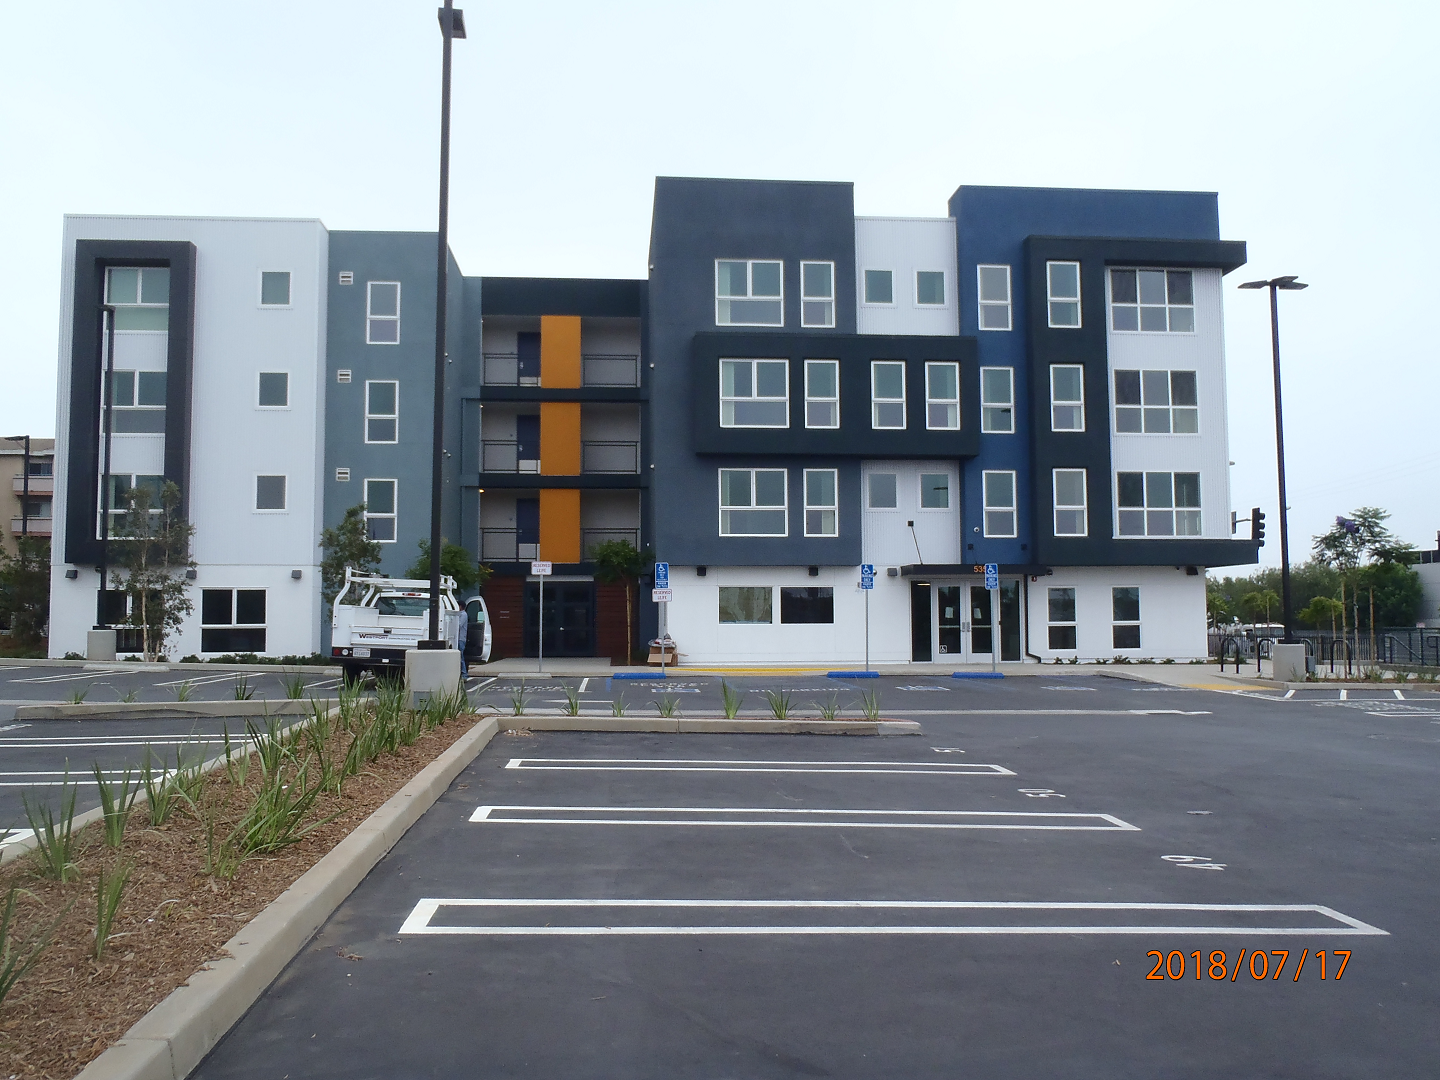 Front view of 4 floor building with parking lot